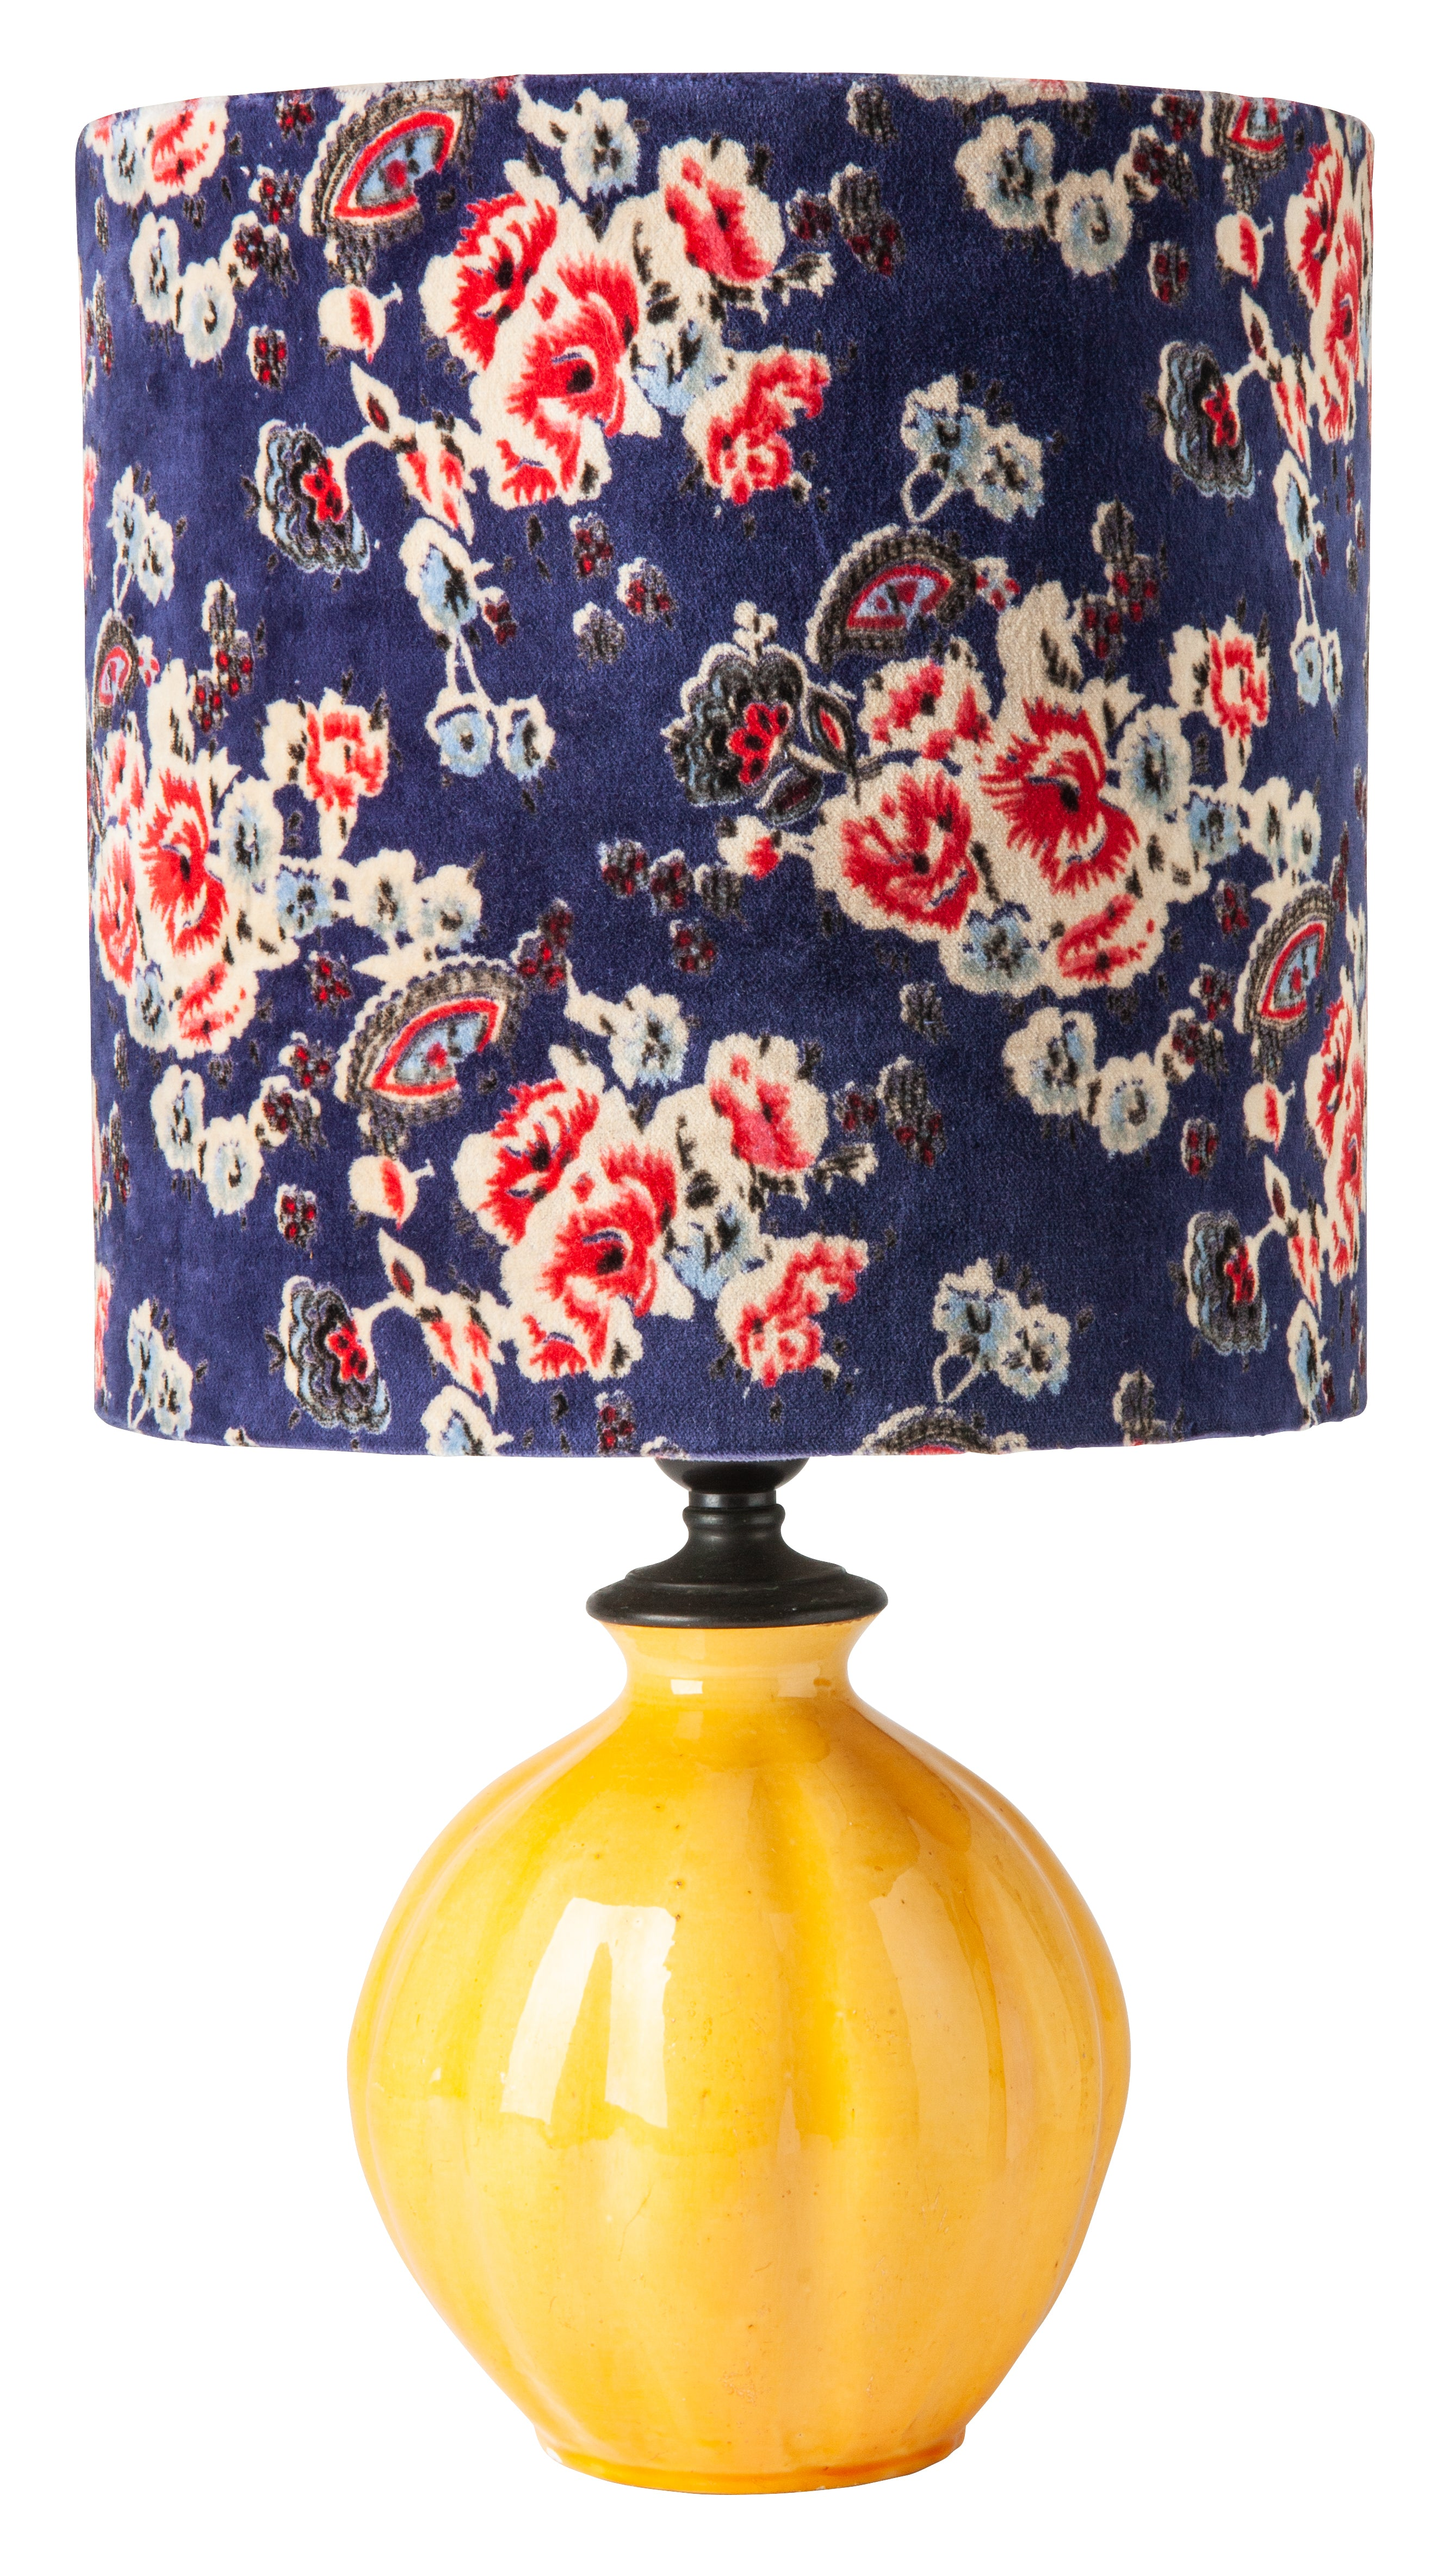 LAMP SHADE FLOWERS 25